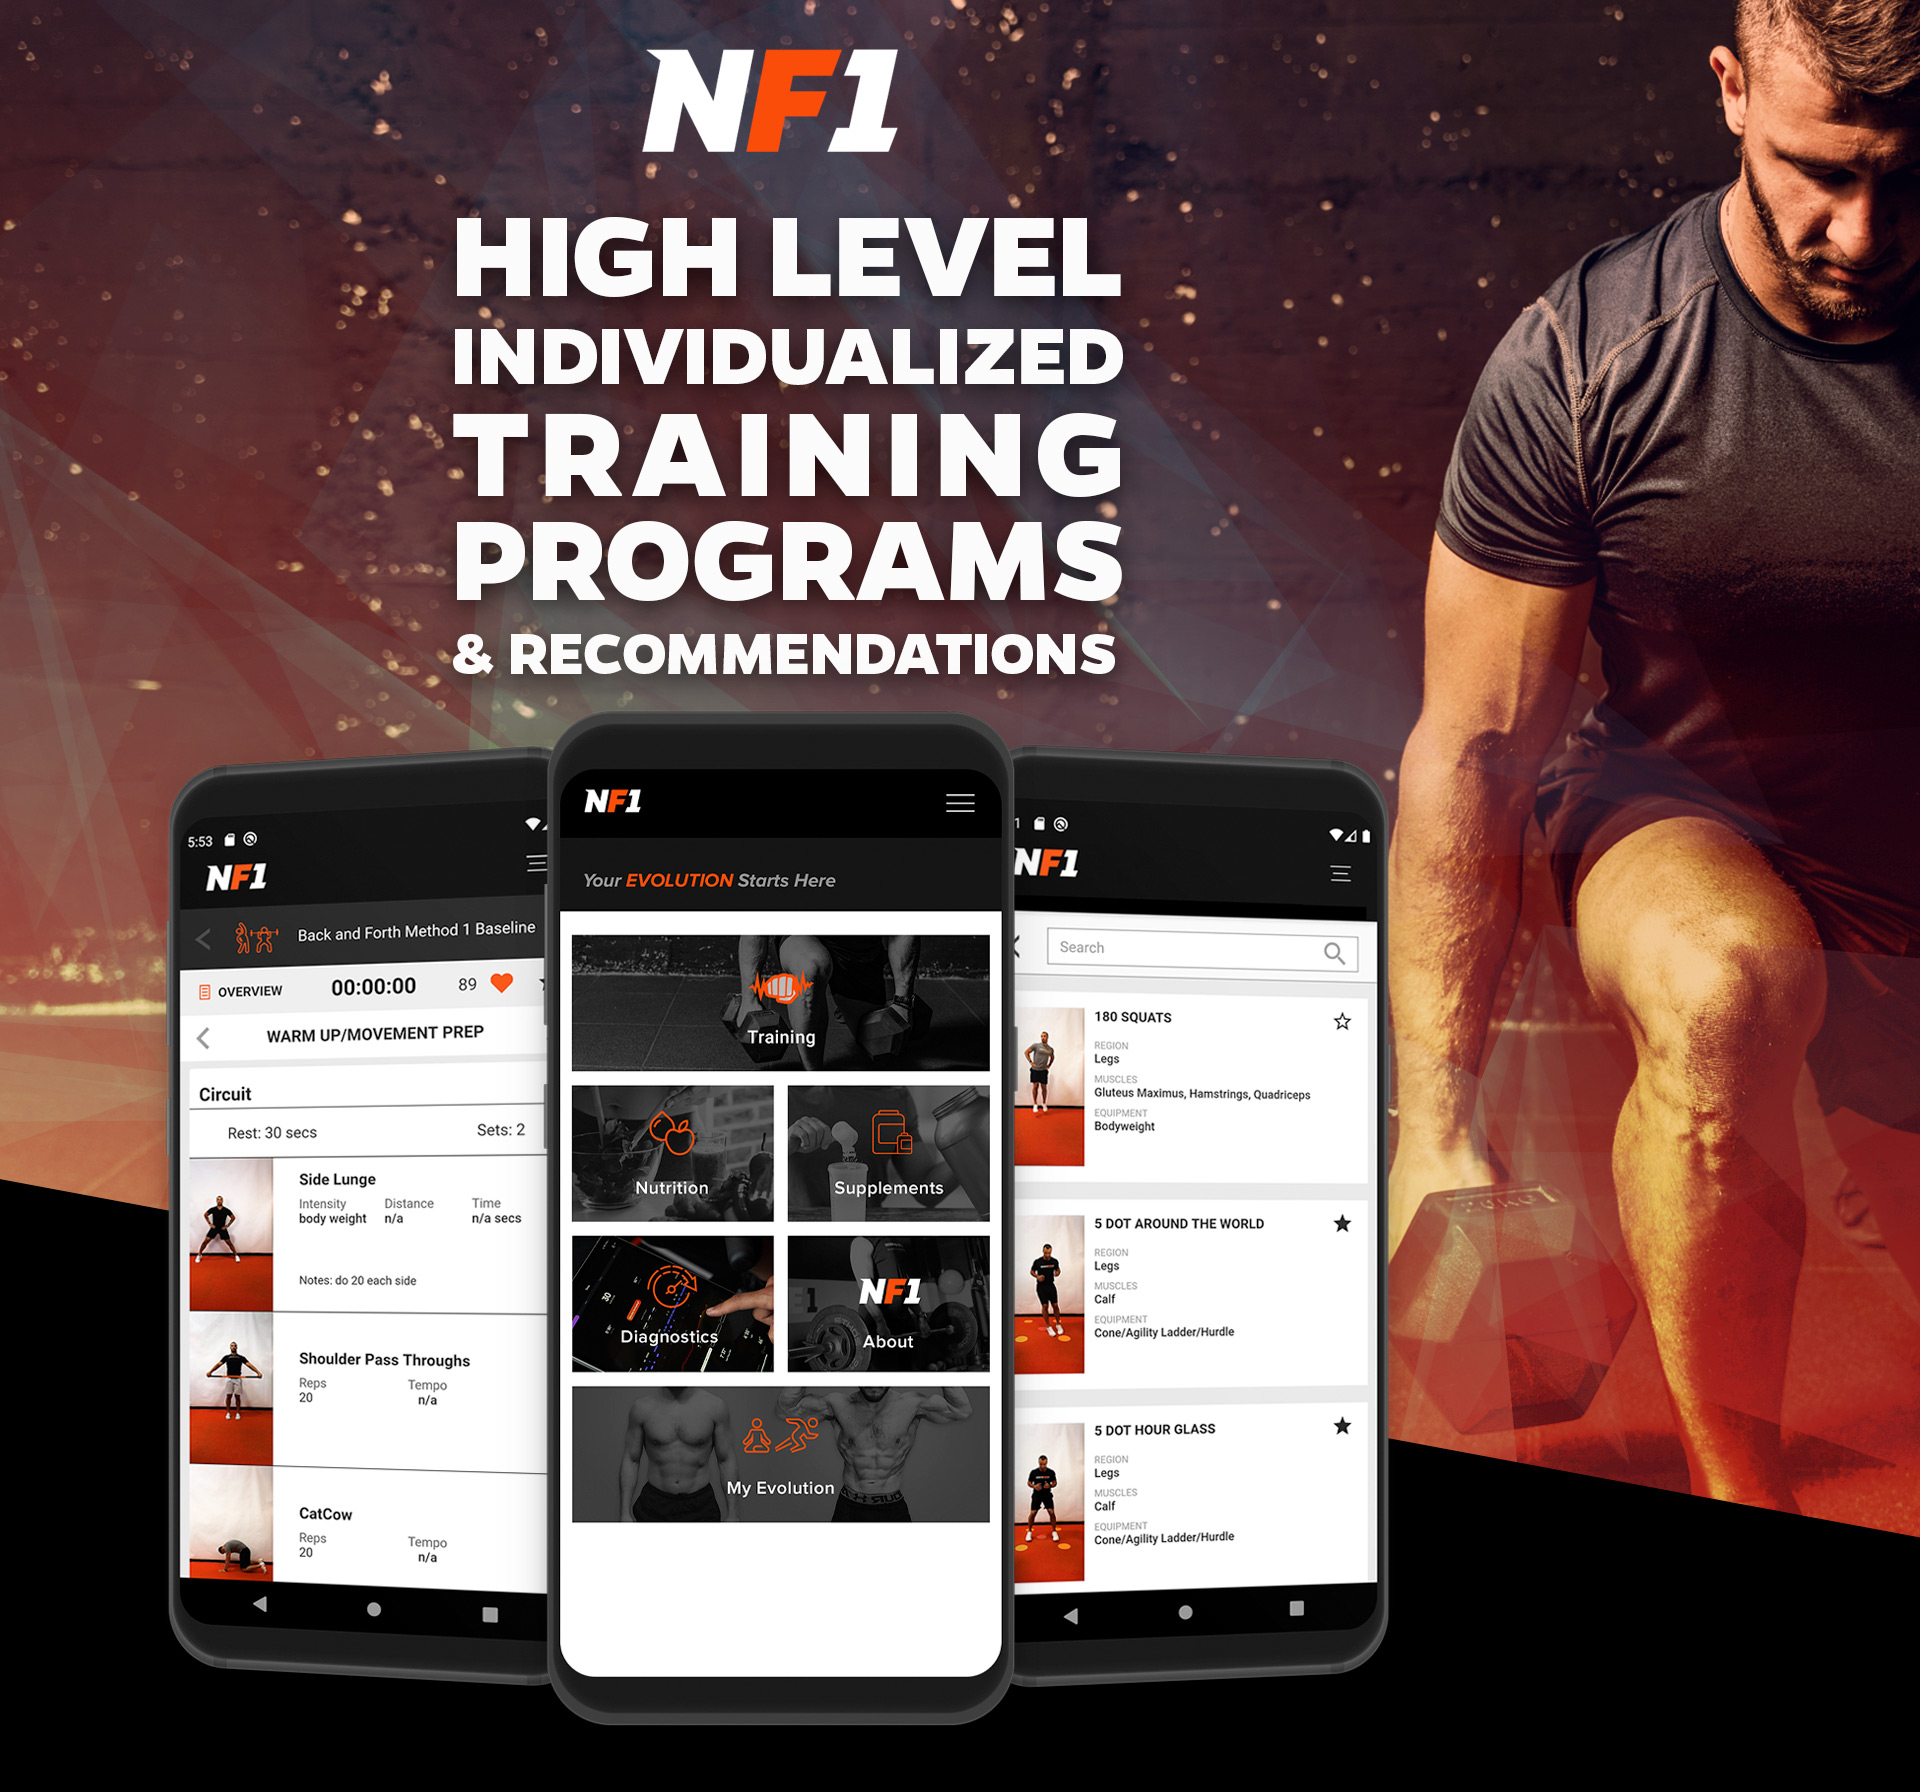 Neuro Force One Launches a New Data Driven App That Will Change the Game of Personal Training